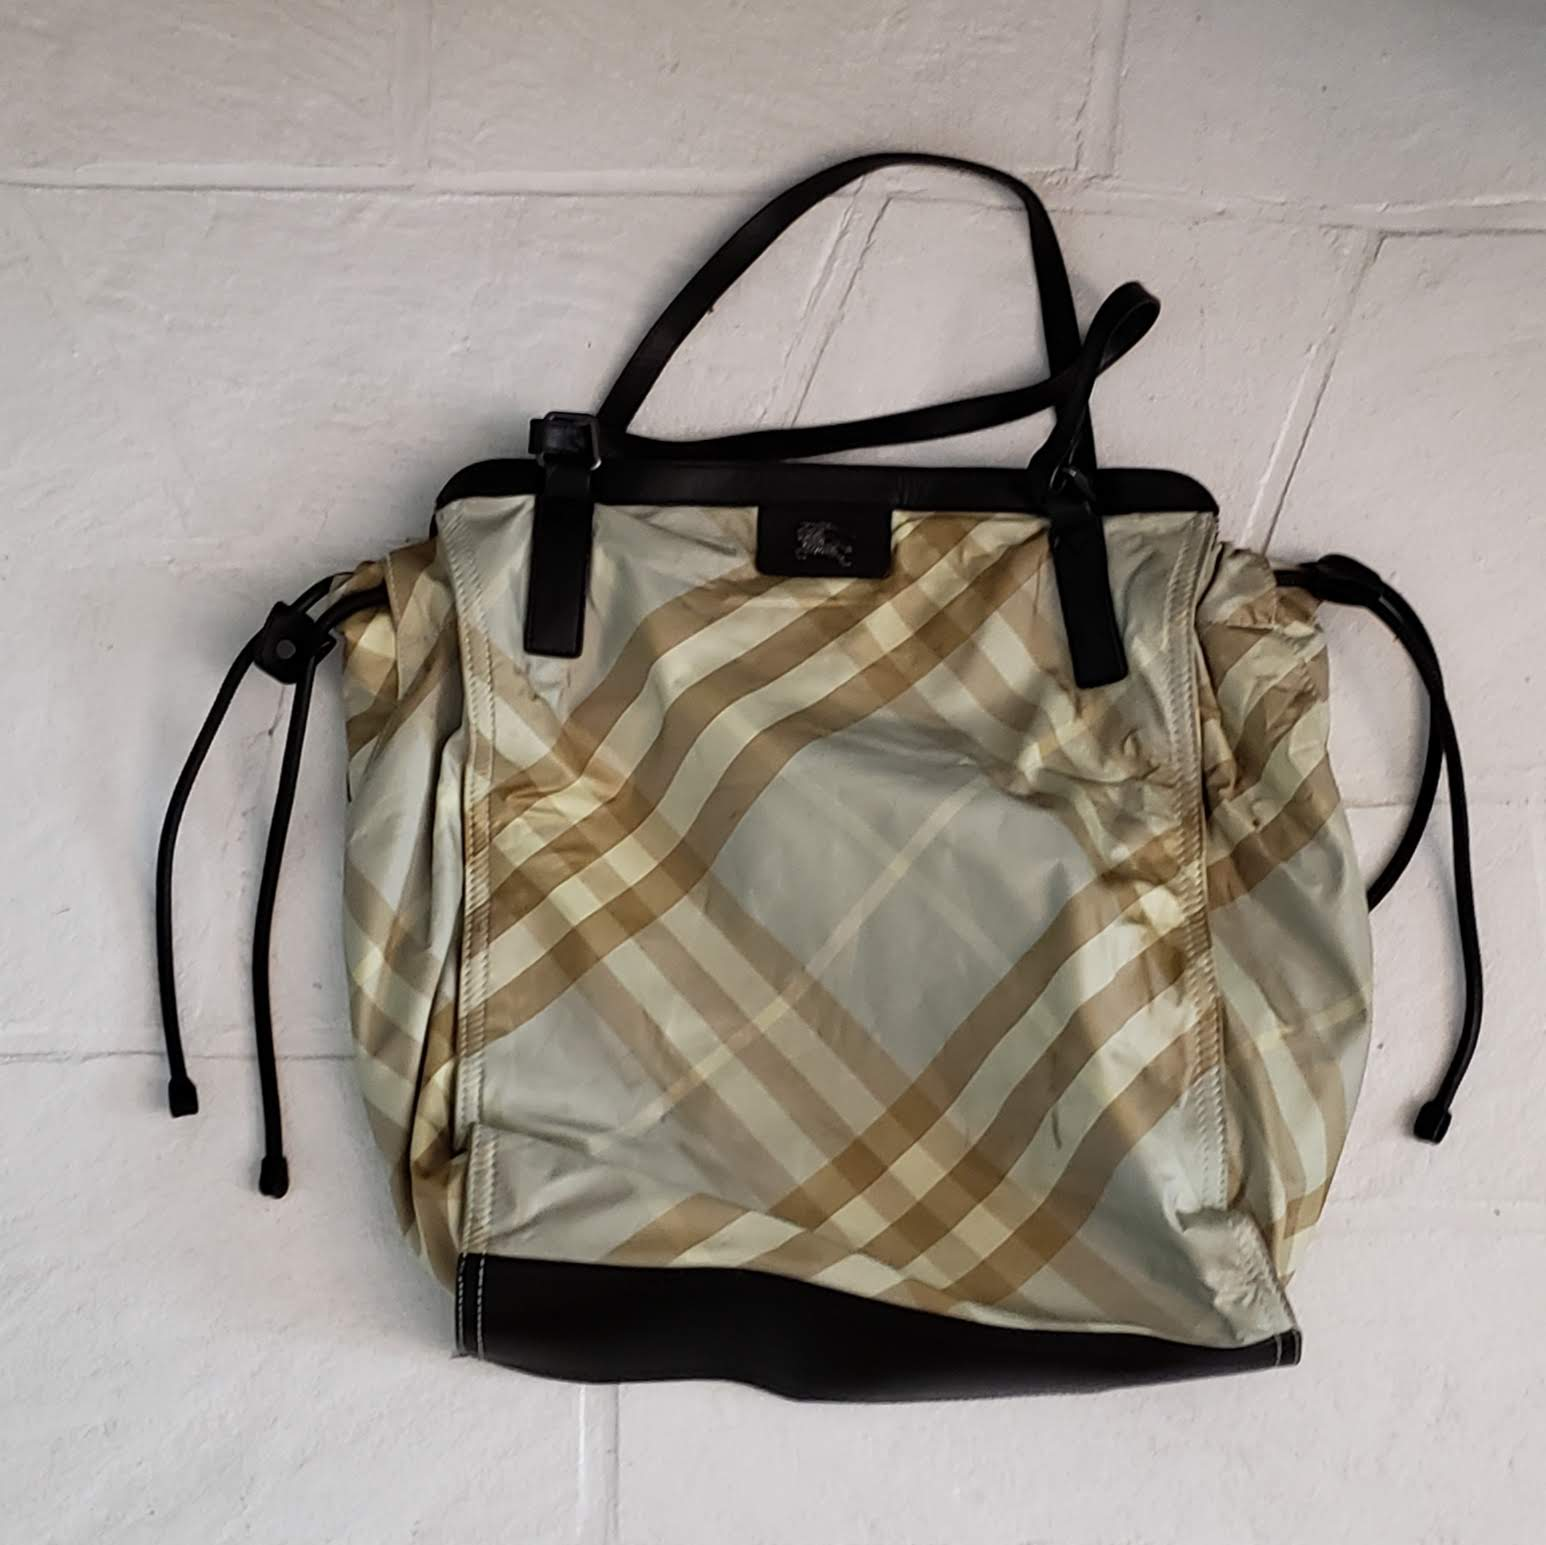 burberry tote $45